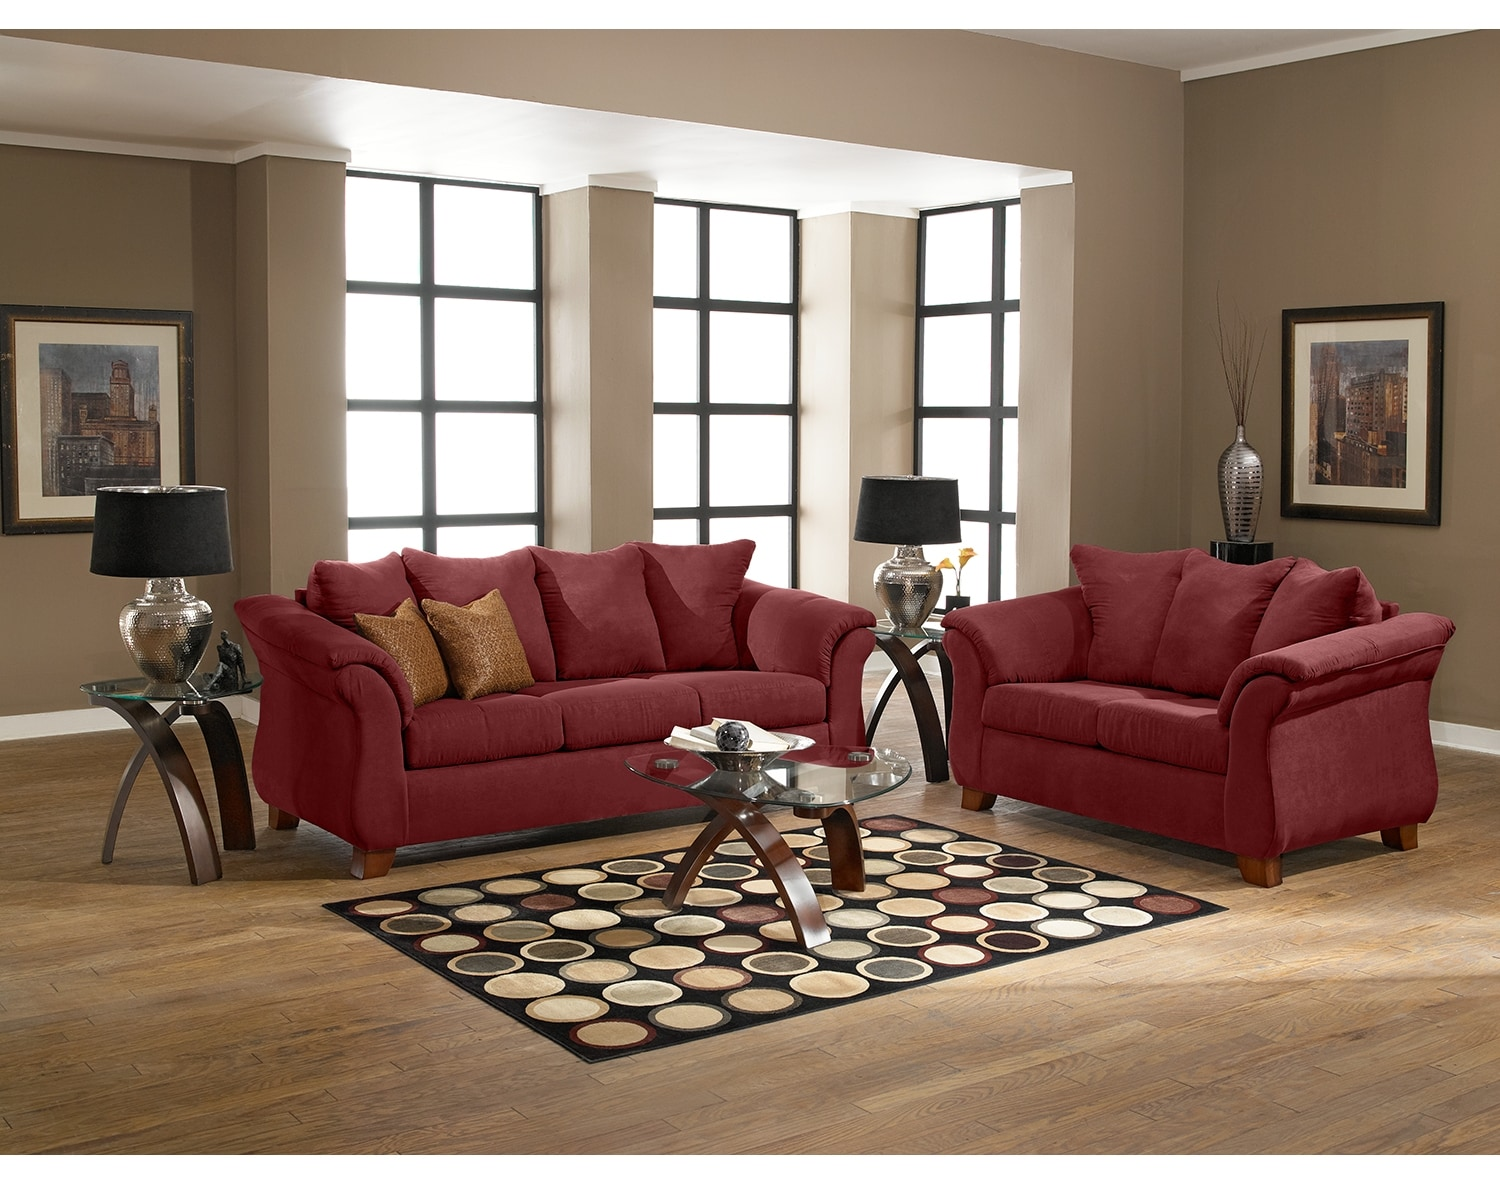 the adrian collection - red | value city furniture